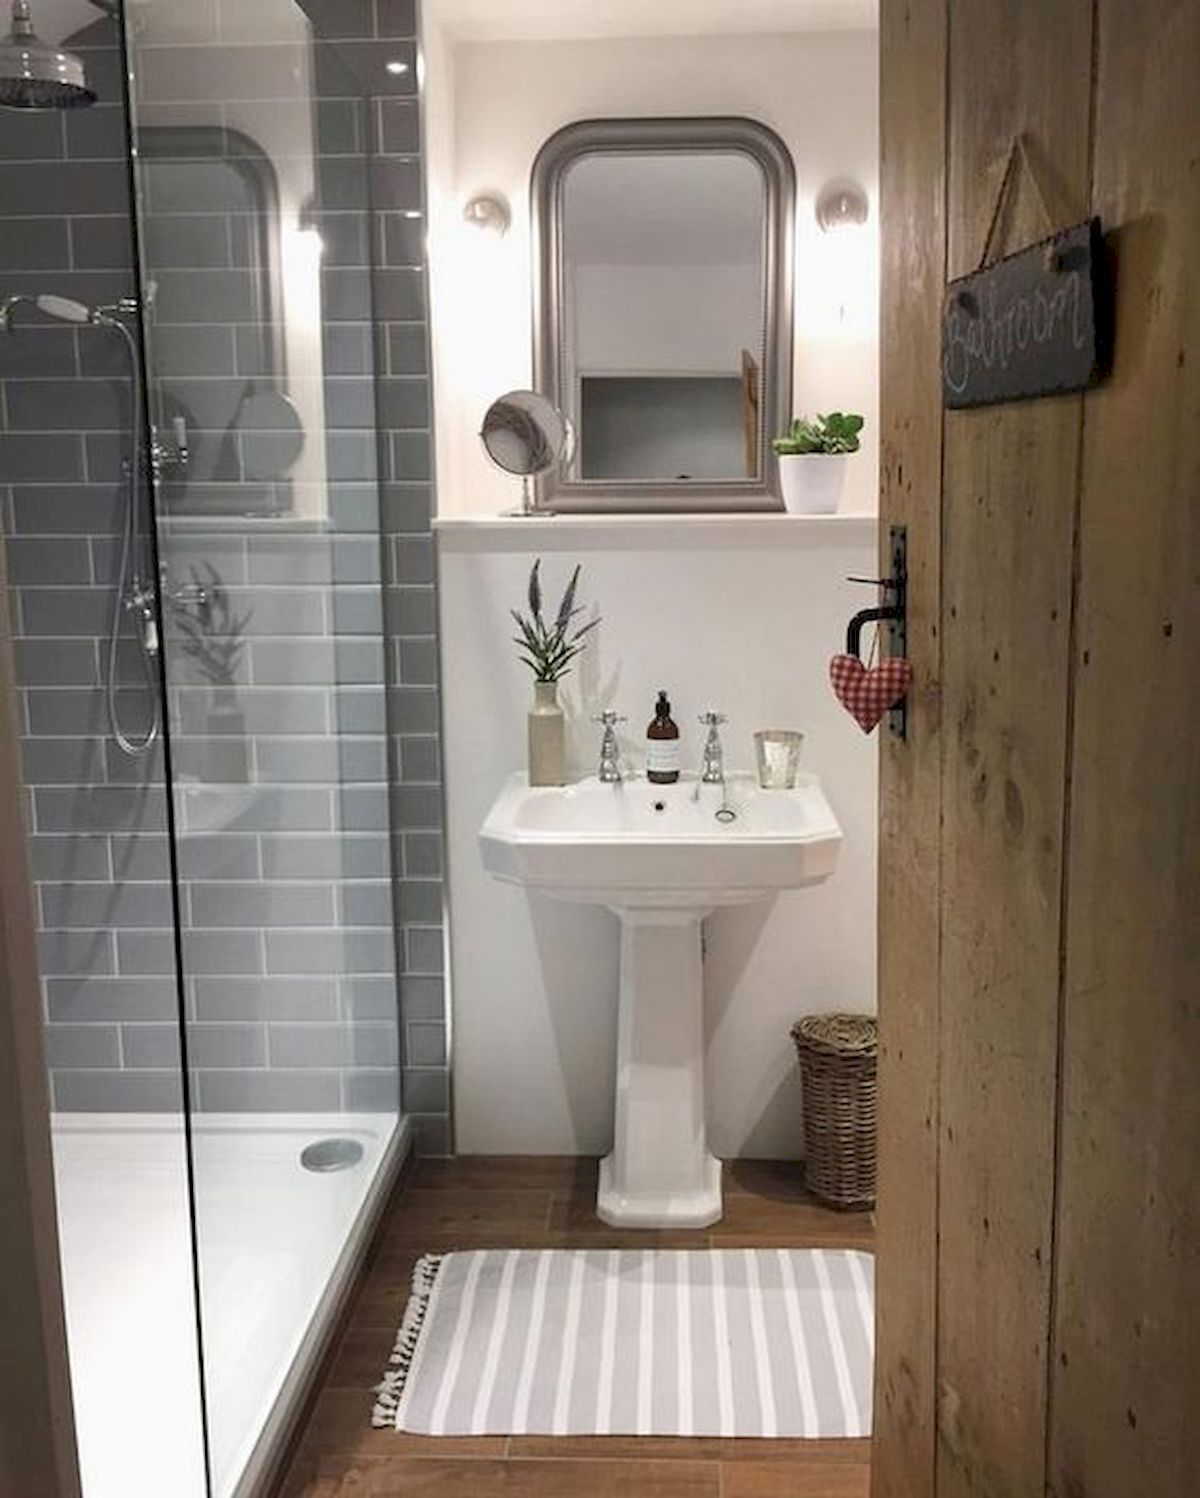 Home Design Ideas Bathroom: 50 Cozy Bathroom Design Ideas For Small Space In Your Home